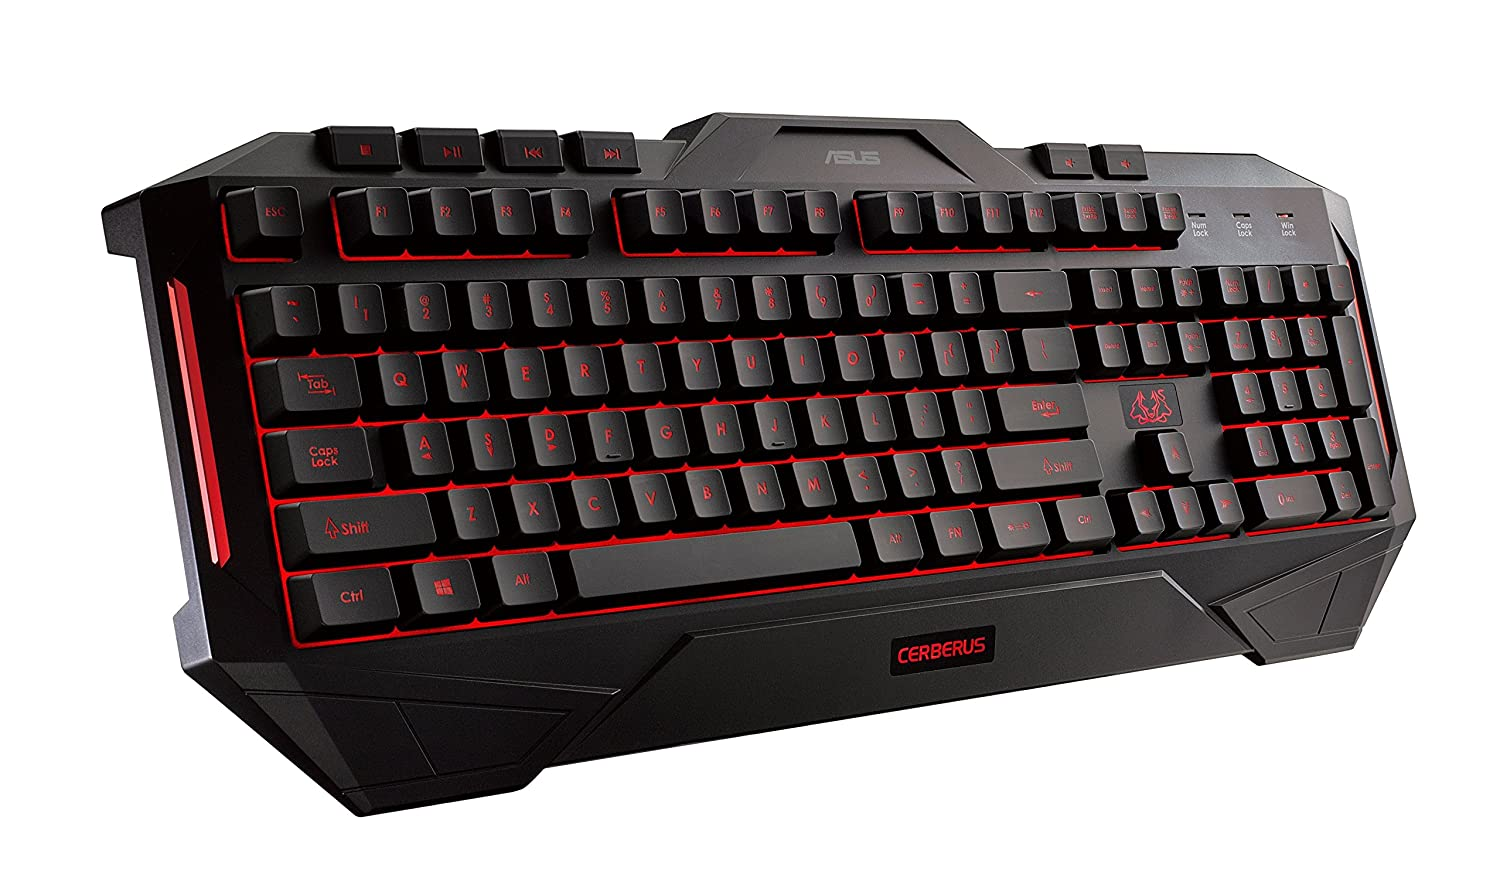 ASUS Gaming Keyboard Cerberus Dual LED Color Backlit